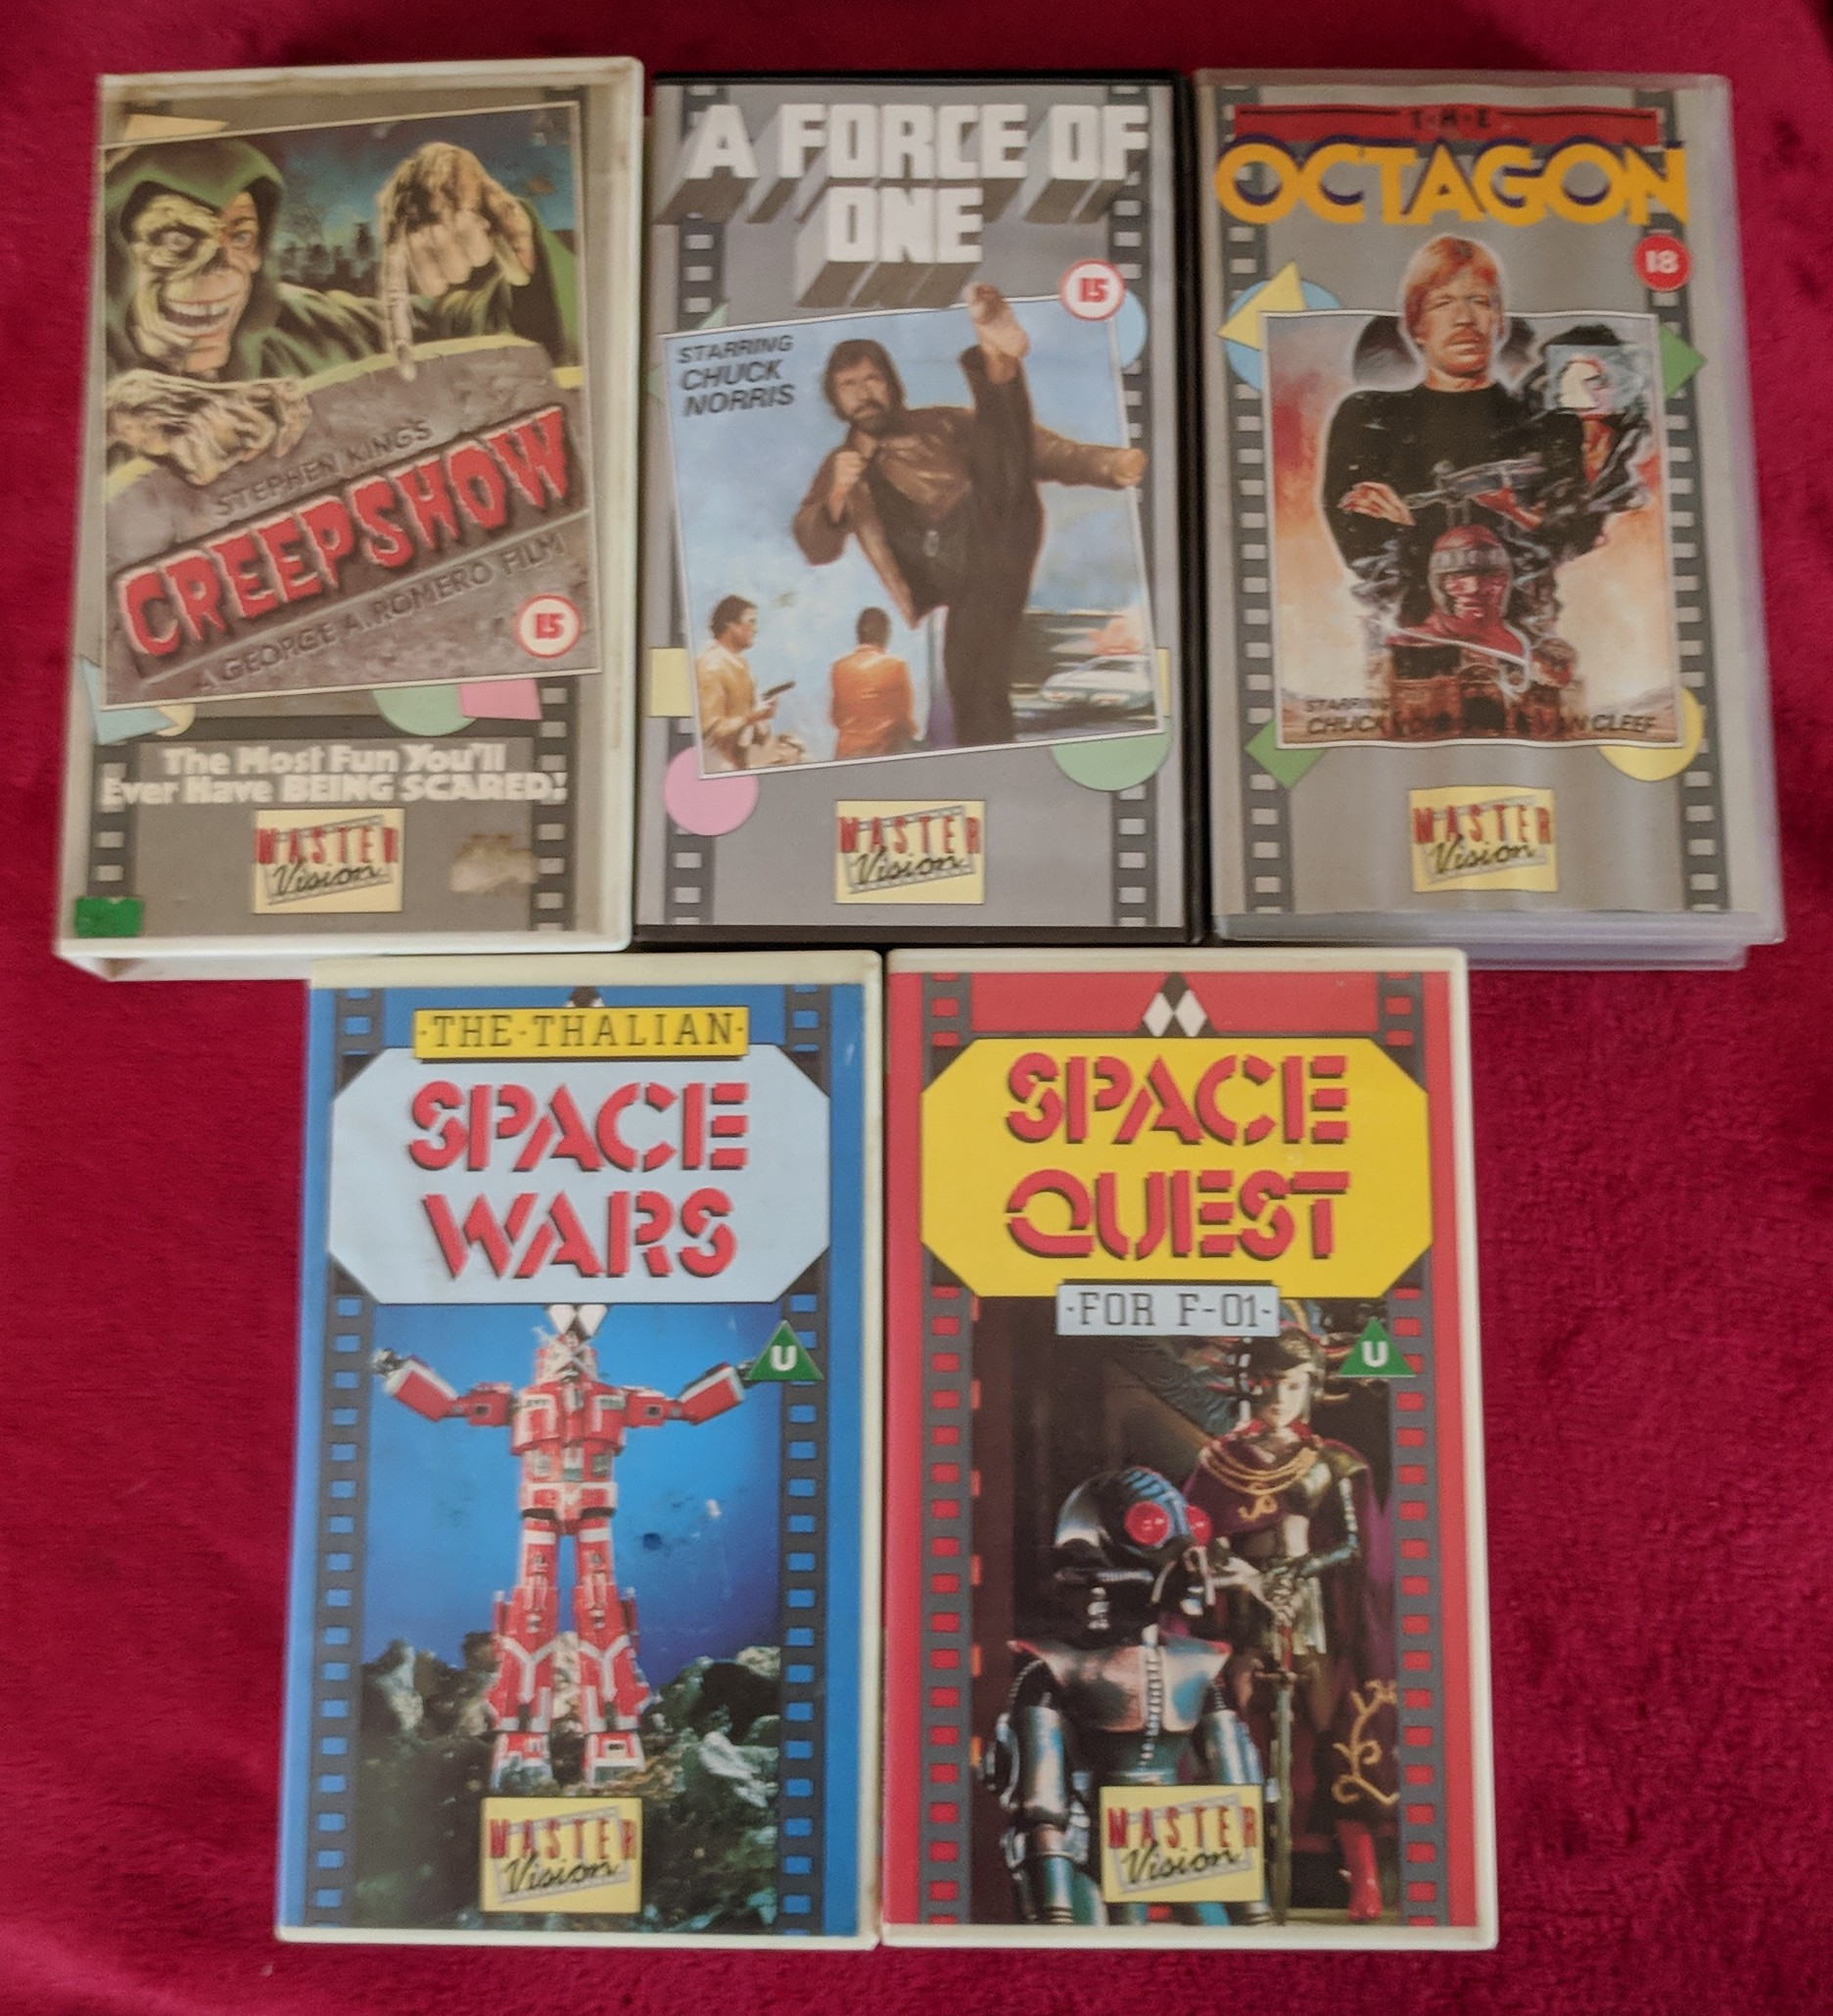 Master Vision VHS releases